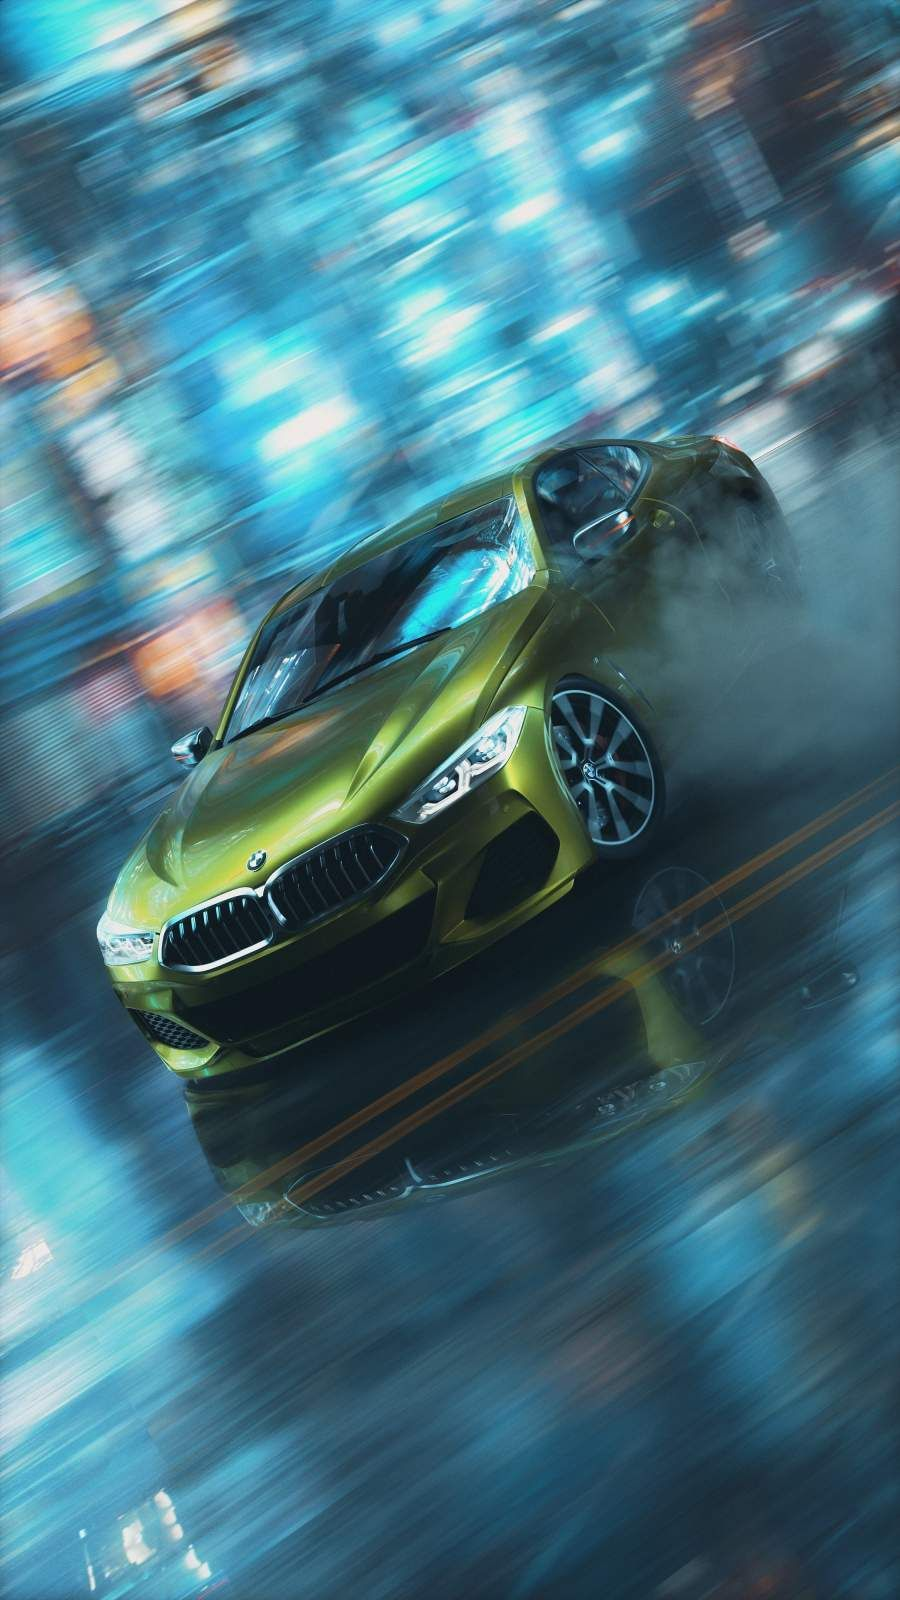 Bmw Drifting Iphone Wallpaper With Images Bmw Wallpapers Bmw Bmw Iphone Wallpaper